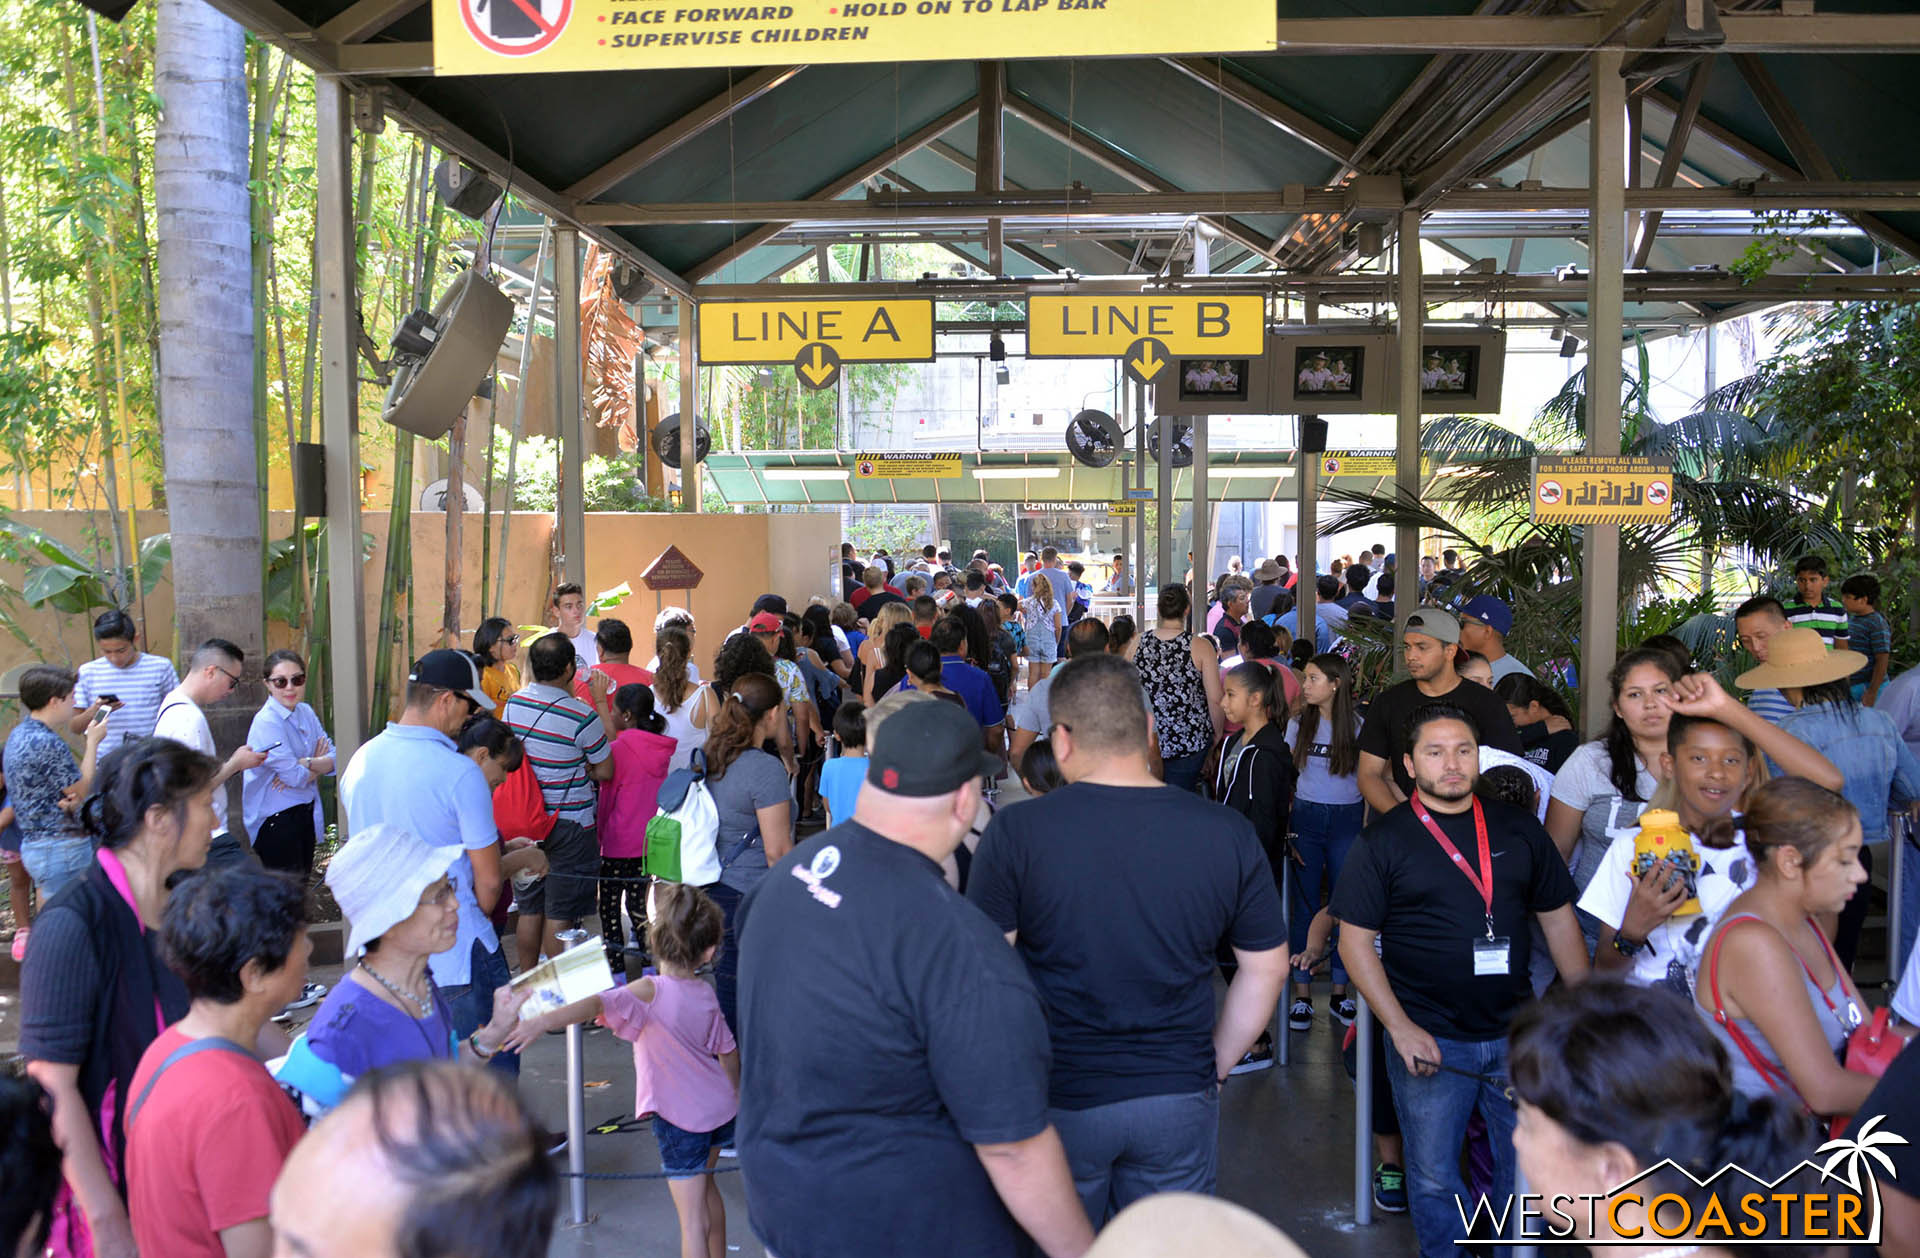 There were a fair amount of people in line on this final day.